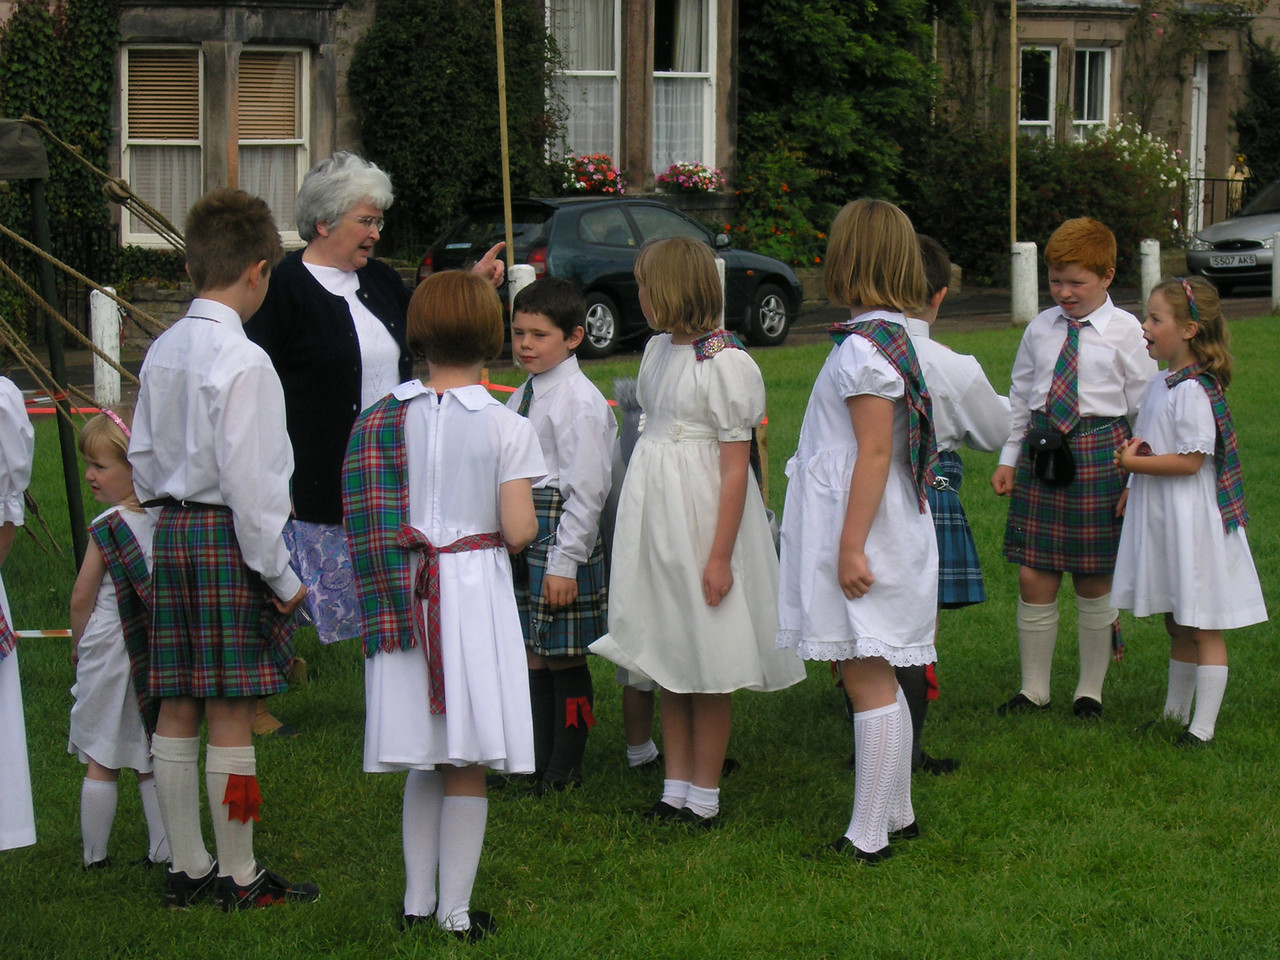 Scottish Dancers...in England